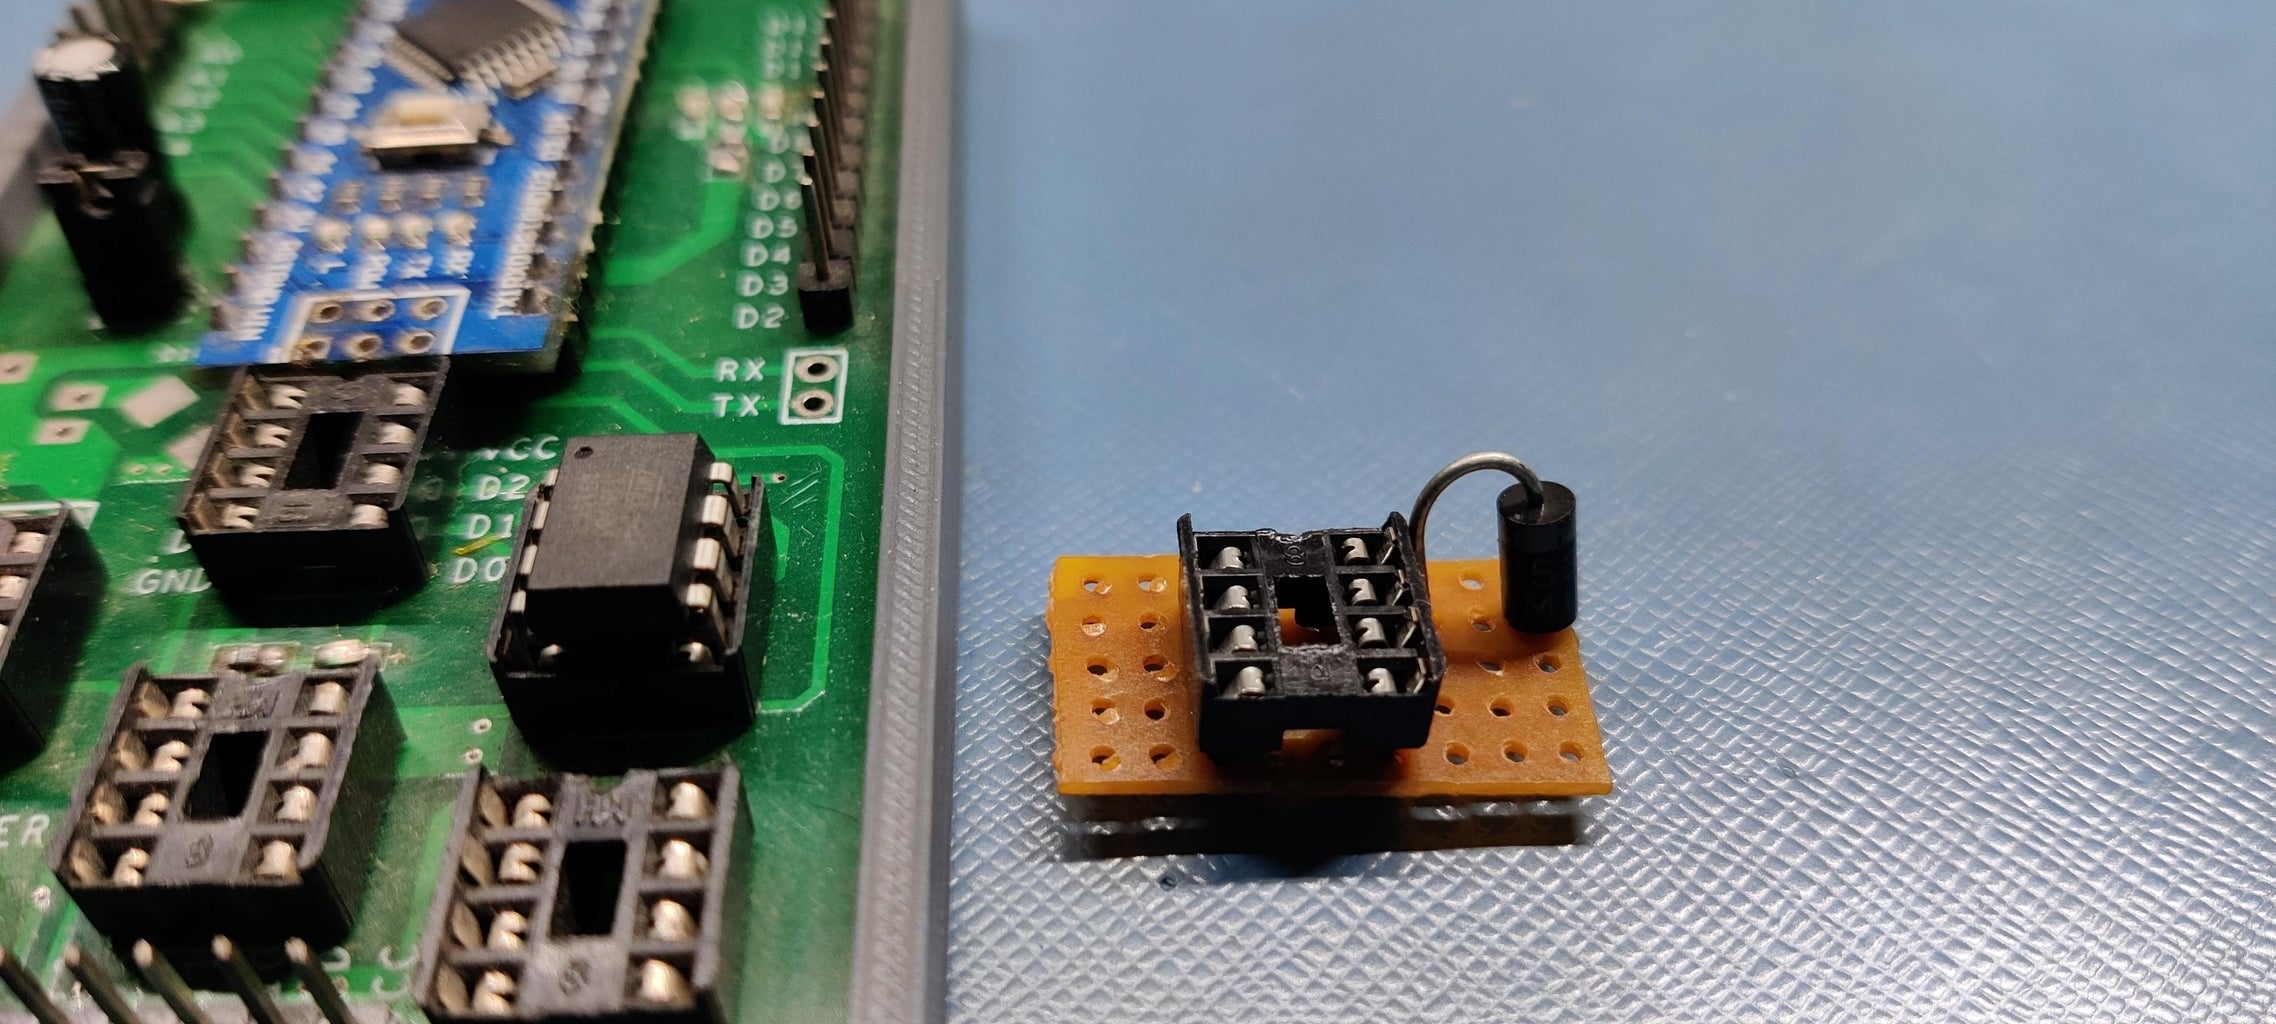 Flashing Process With Arduino As ISP Programmer